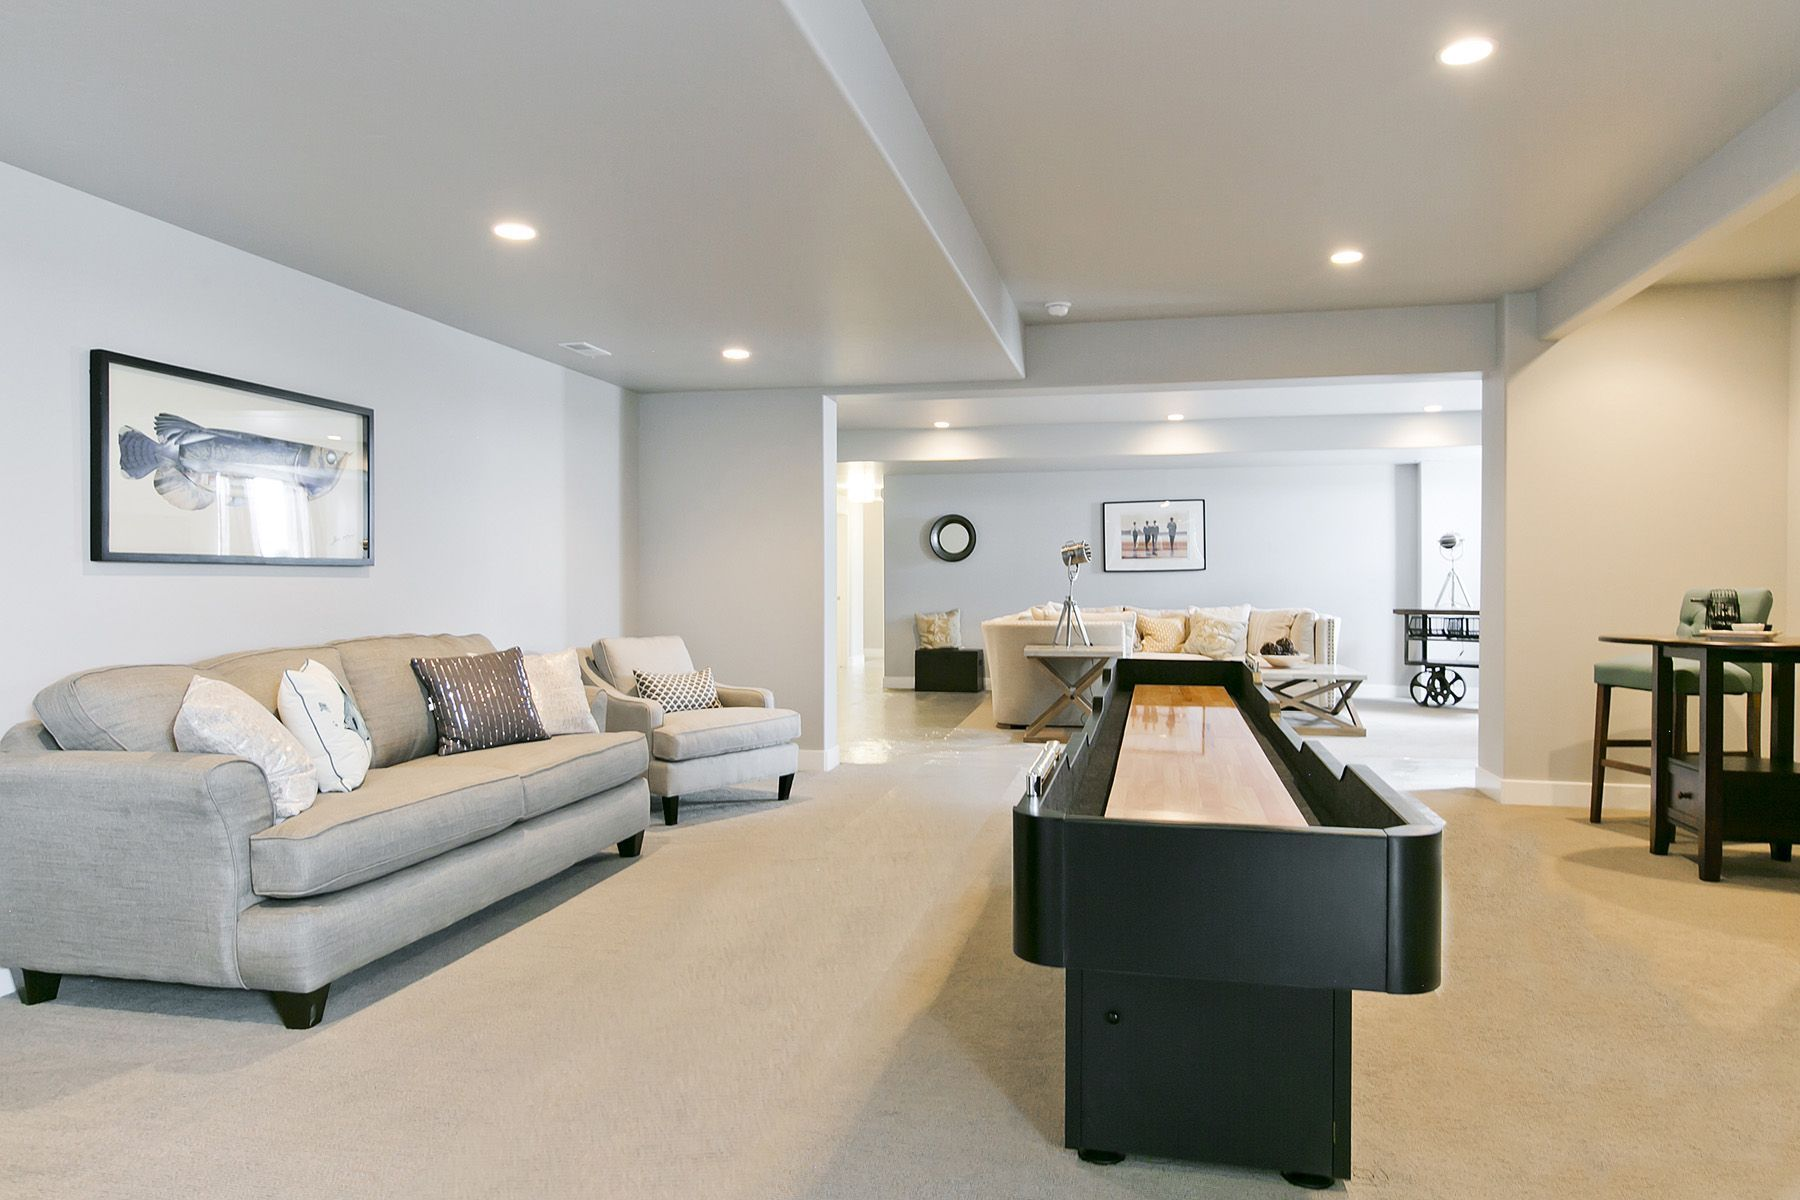 Family Game Room In Basement In Aria Home Design By Symphony Homes